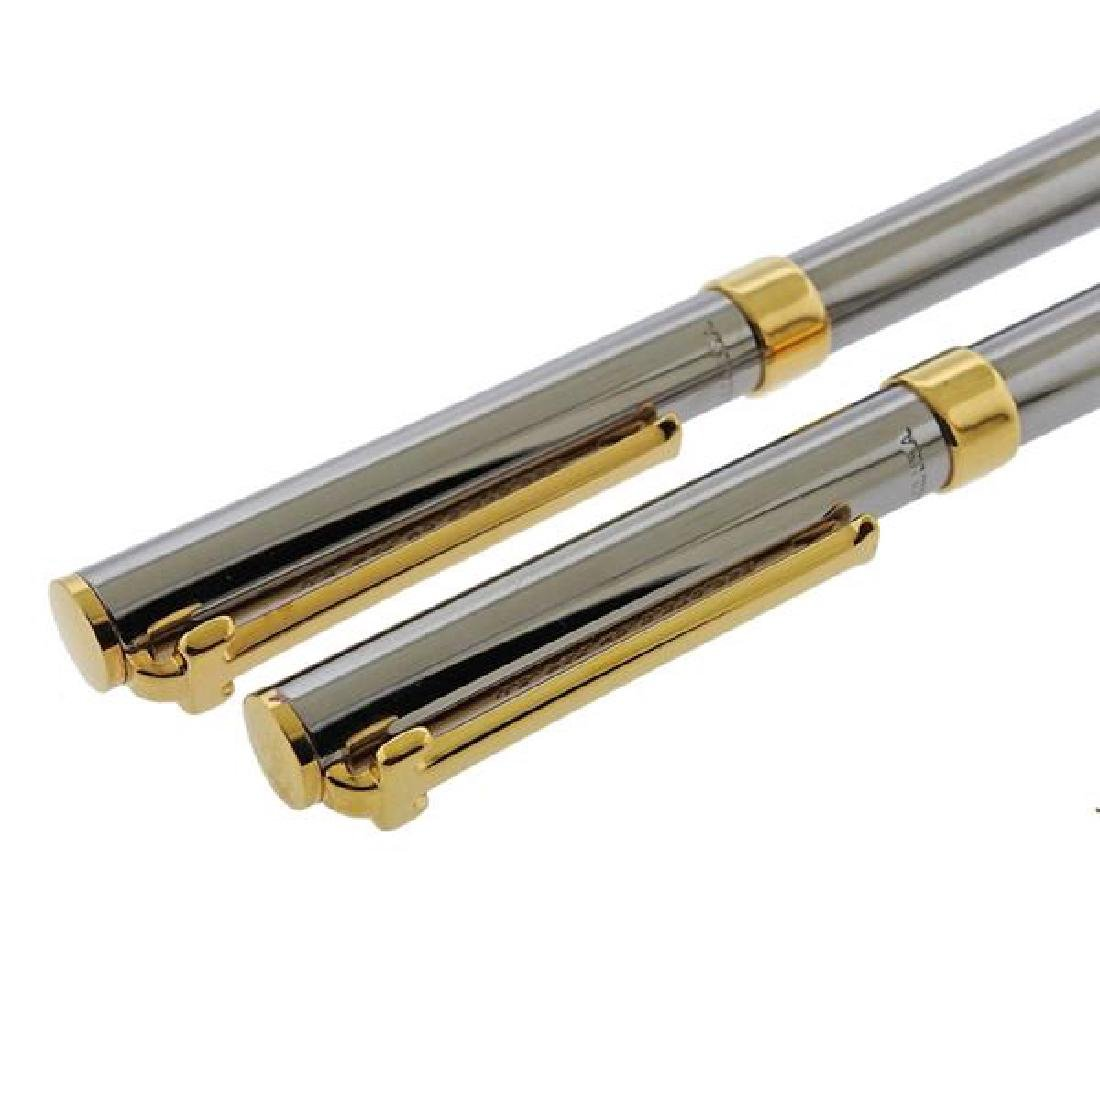 Tiffany & Co T Clip Steel Gold Plated Pencil Pen - 4